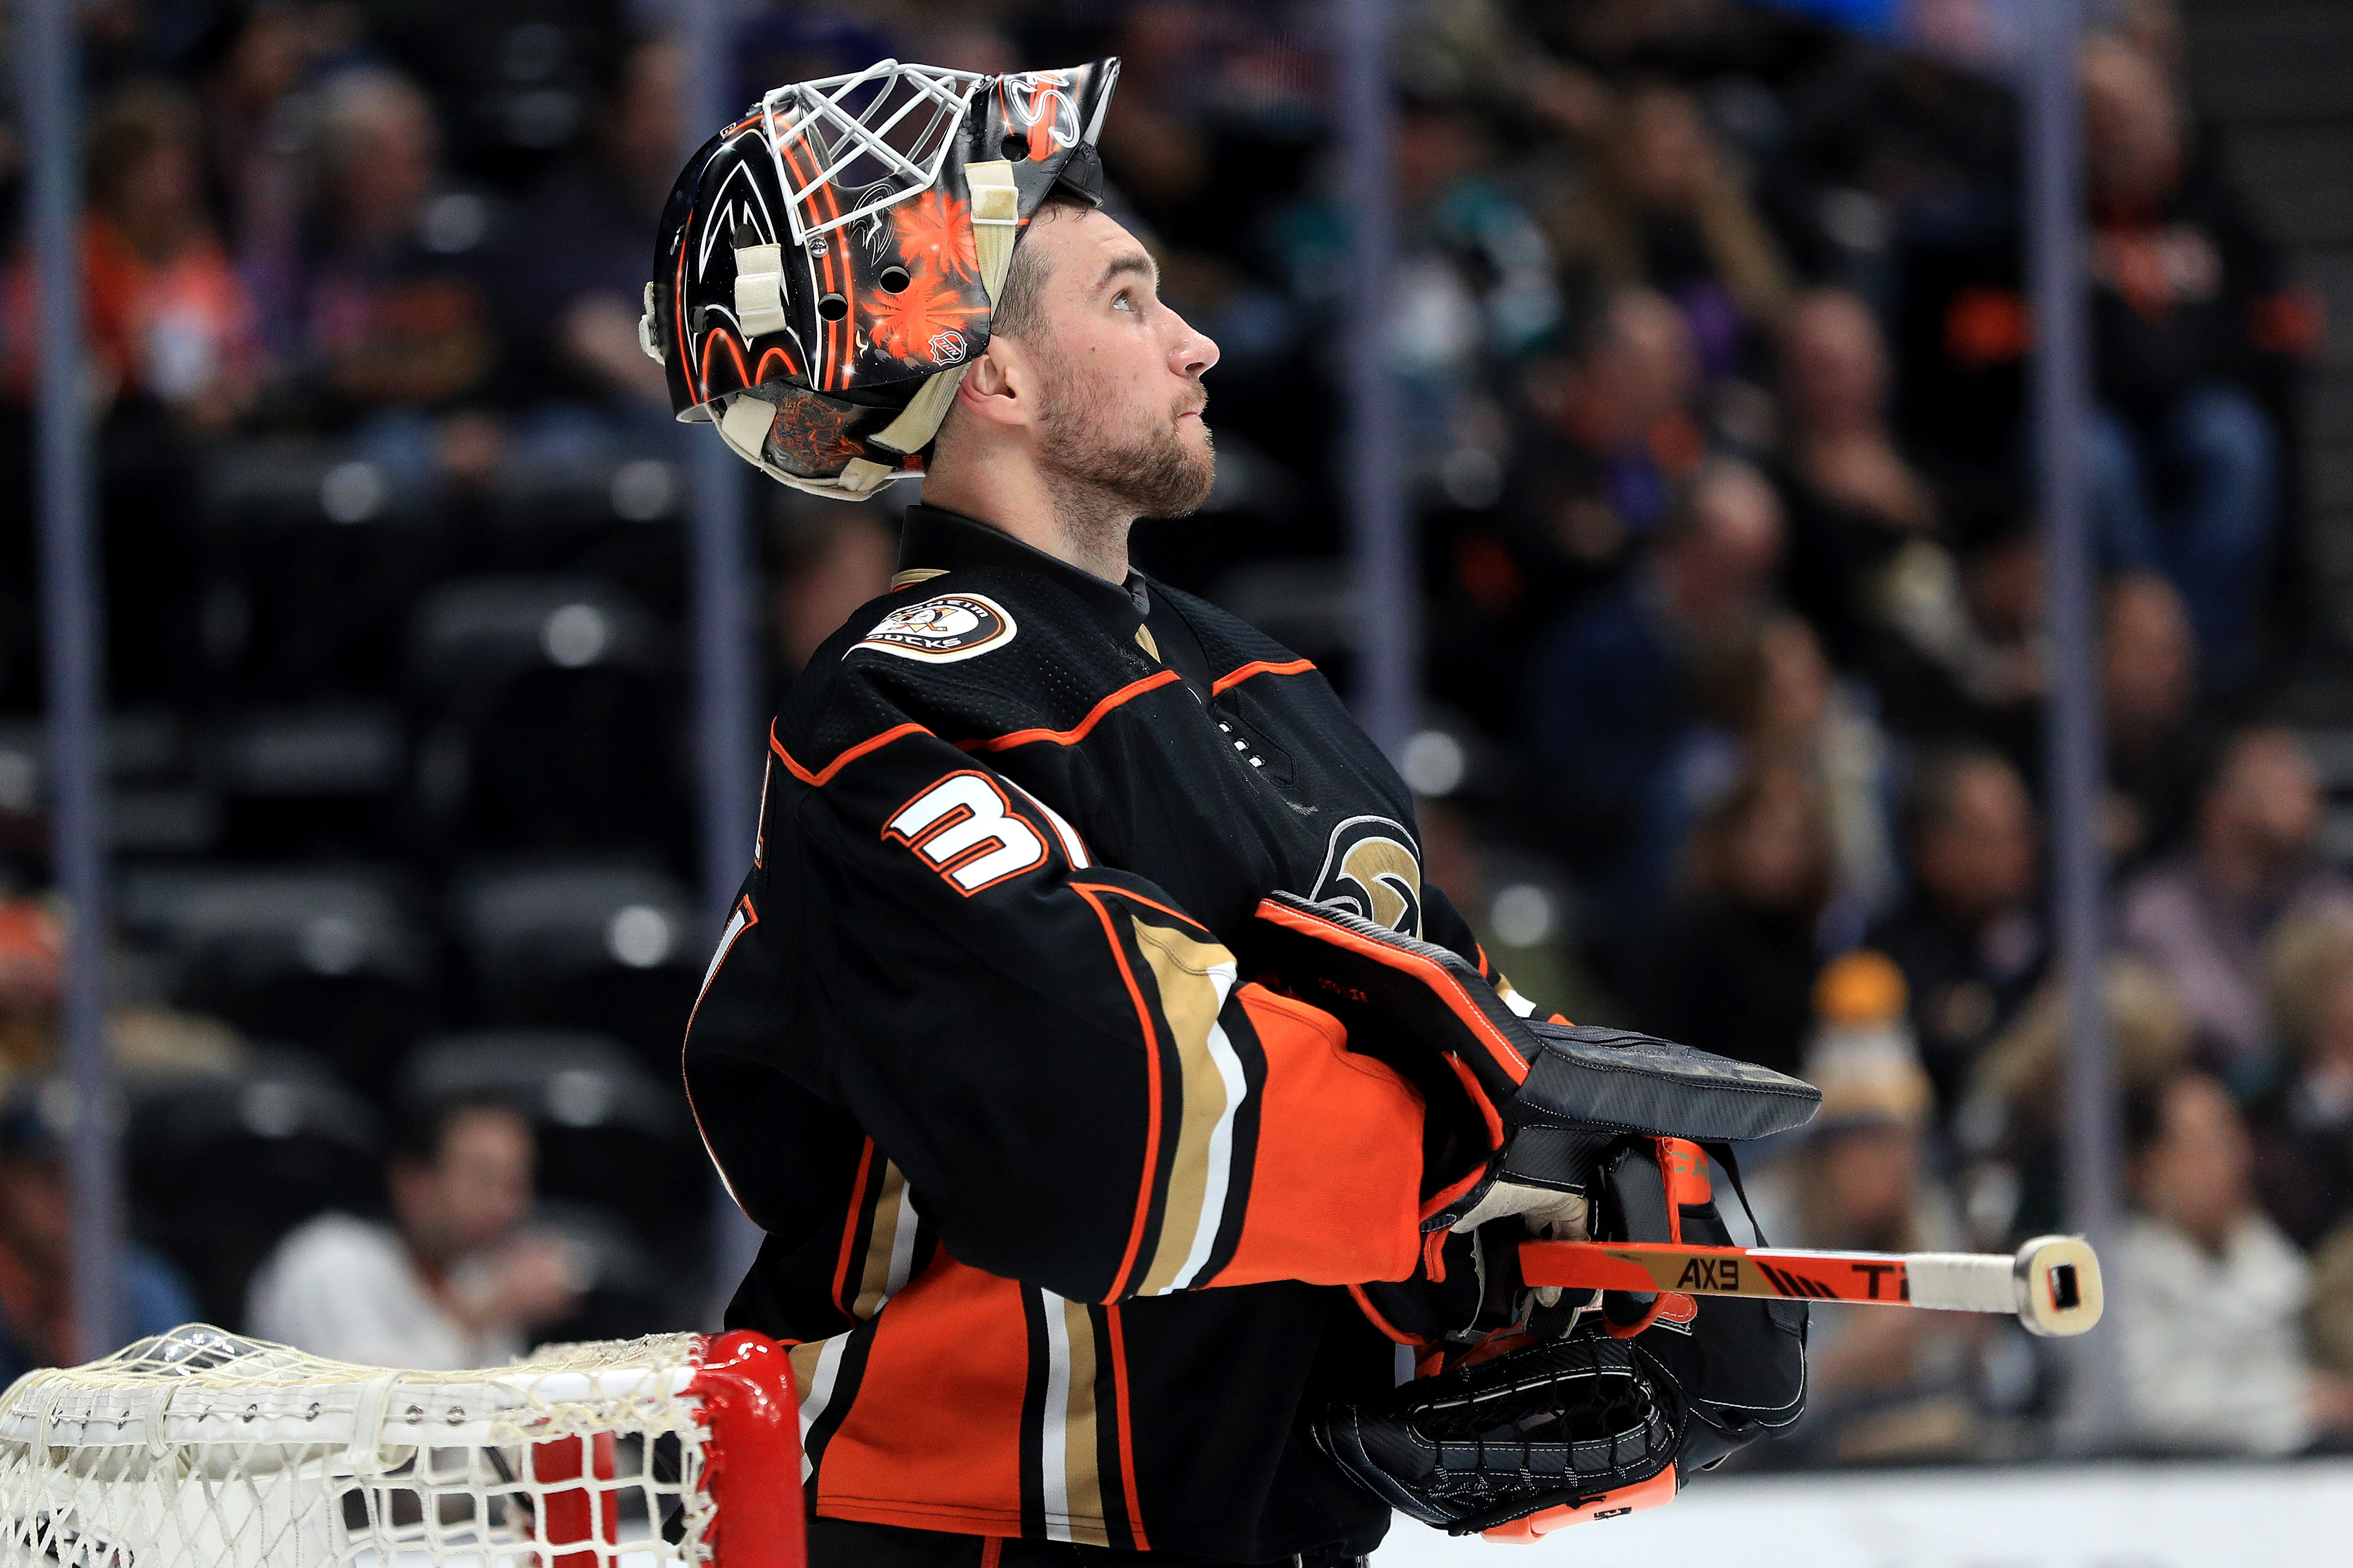 Anthony Stolarz #31 of the Anaheim Ducks blocks looks on during the second period of a game against the St. Louis Blues at Honda Center on March 11, 2020 in Anaheim, California.